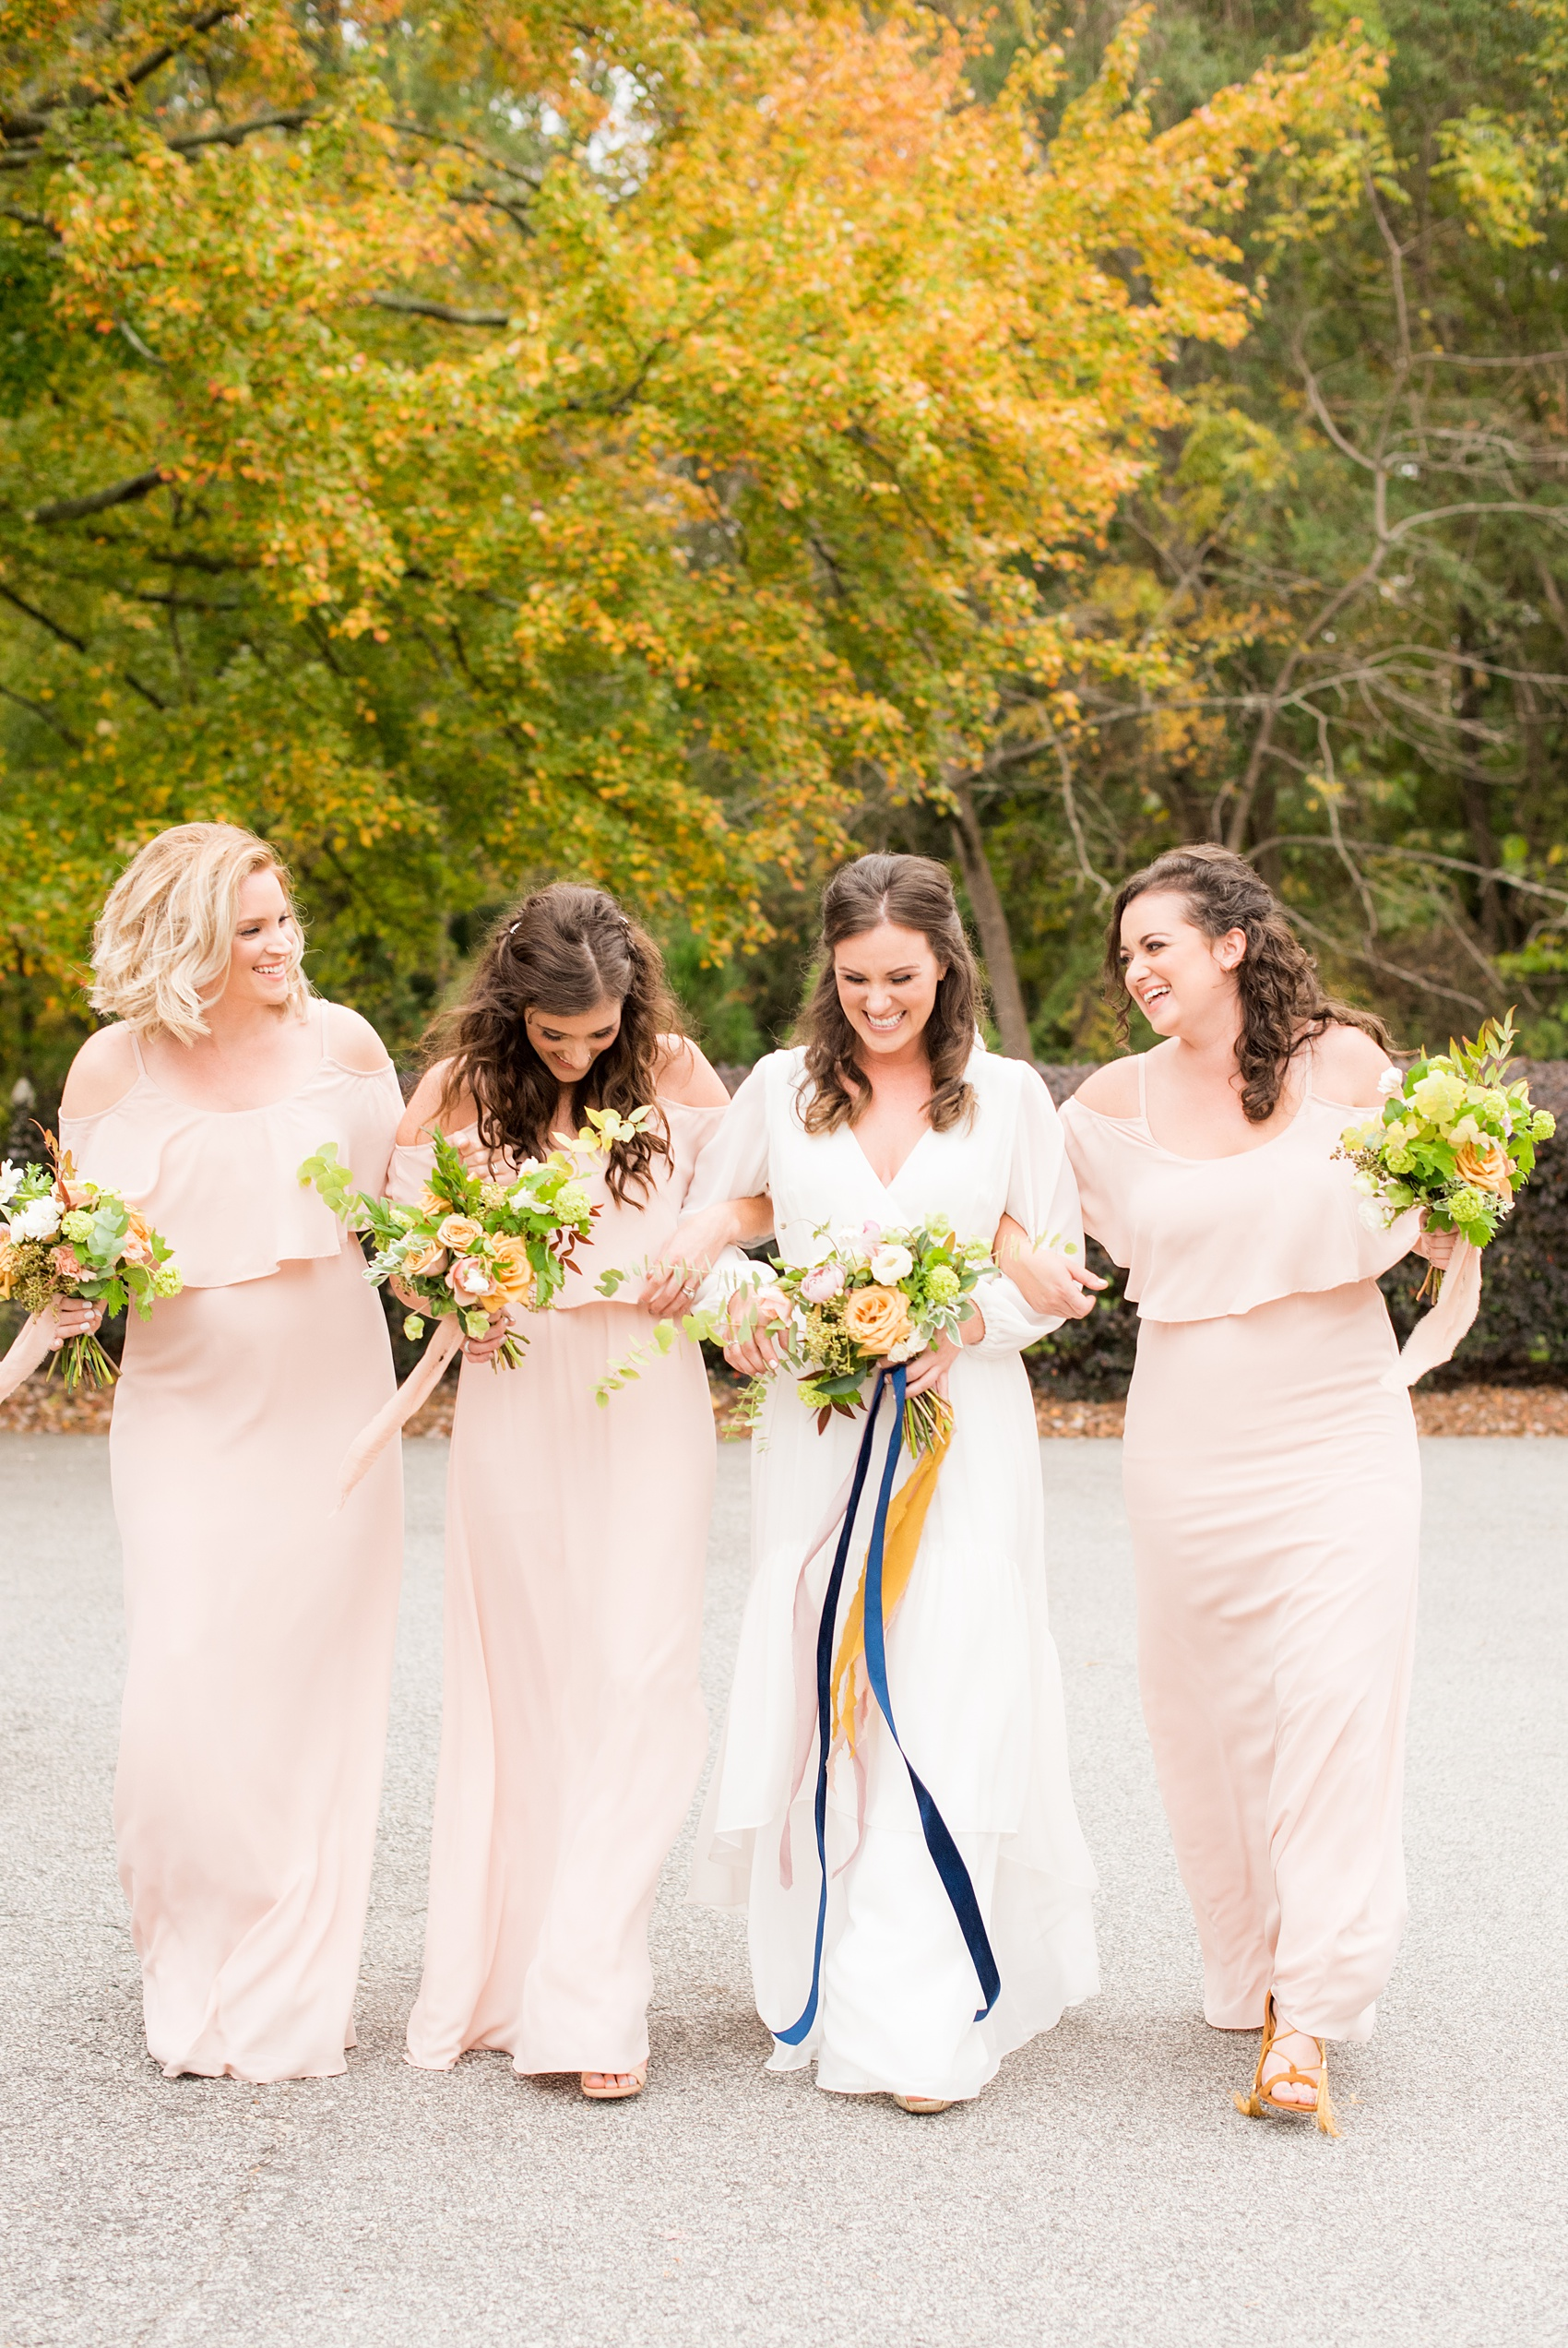 Mikkel Paige Photography photos from a wedding at Leslie-Alford Mims House in North Carolina. Picture of the bridal party in light pink, off-the-shoulder, chiffon dresses for a fall Mad Dash Weddings event.